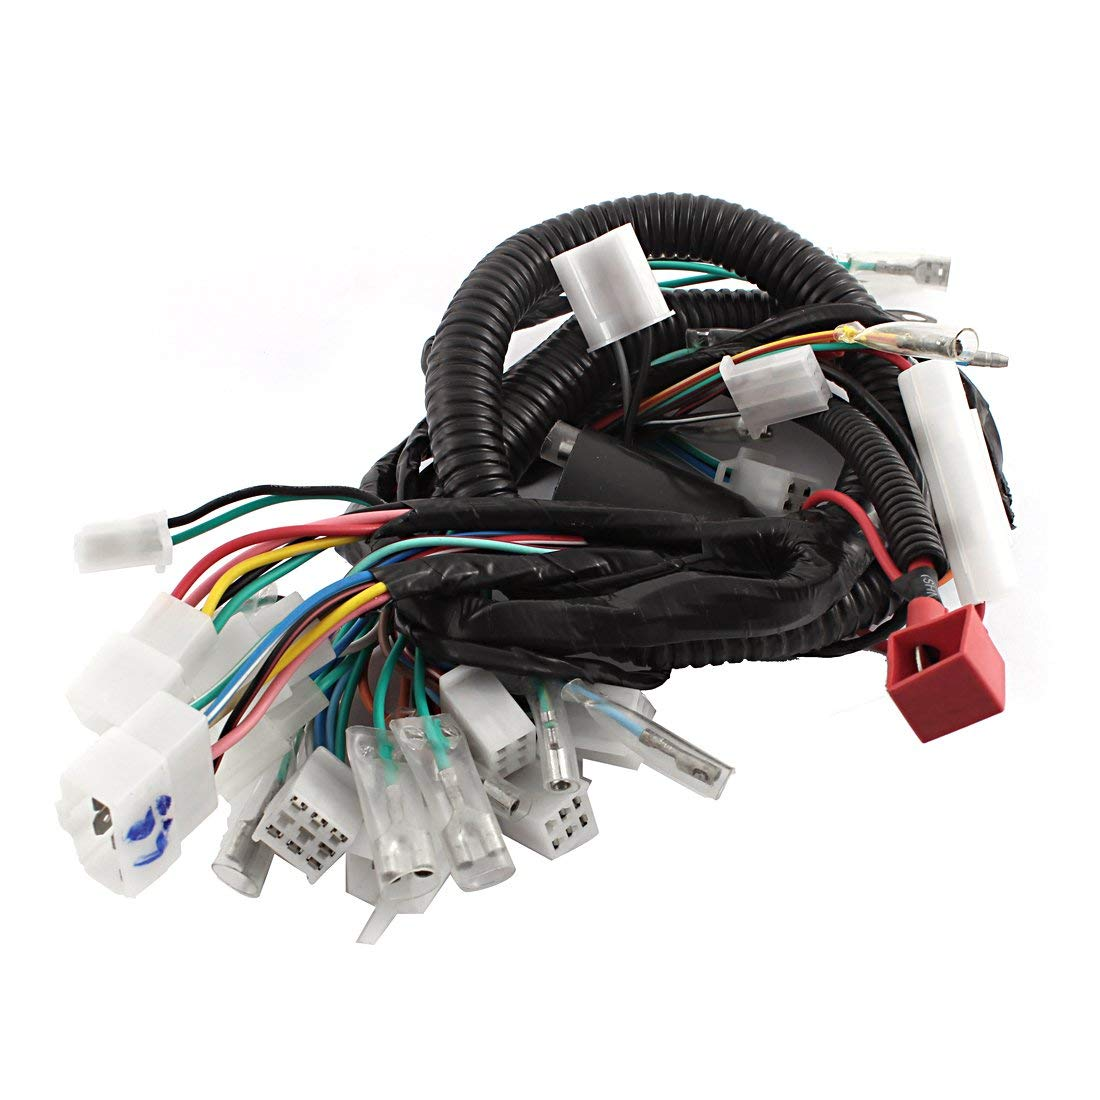 motorcycle ultima complete system electrical main wiring harness for gs [ 1100 x 1100 Pixel ]